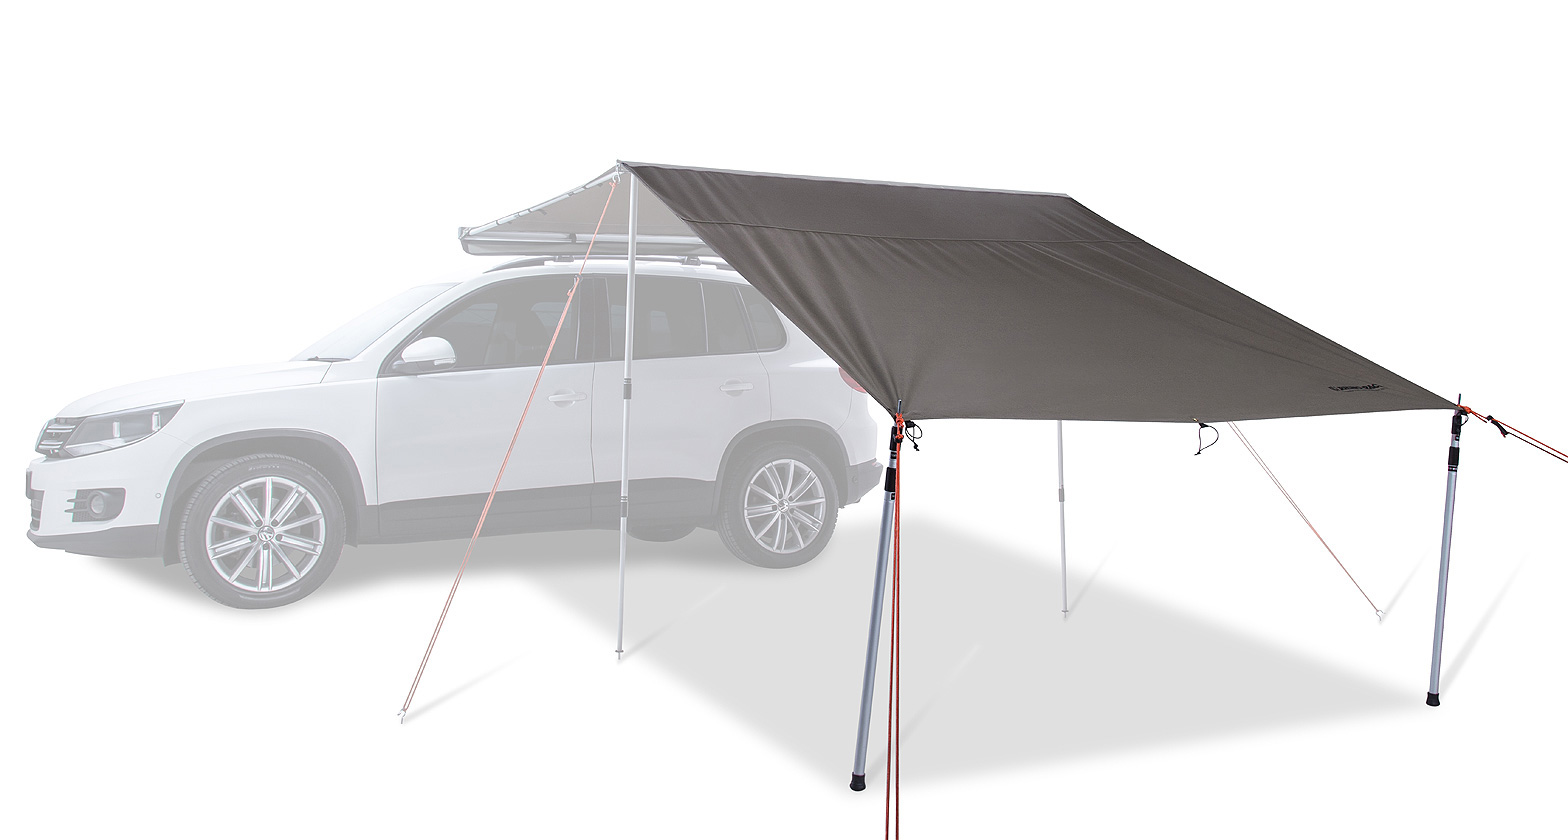 Sunseeker 20m Awning Extension